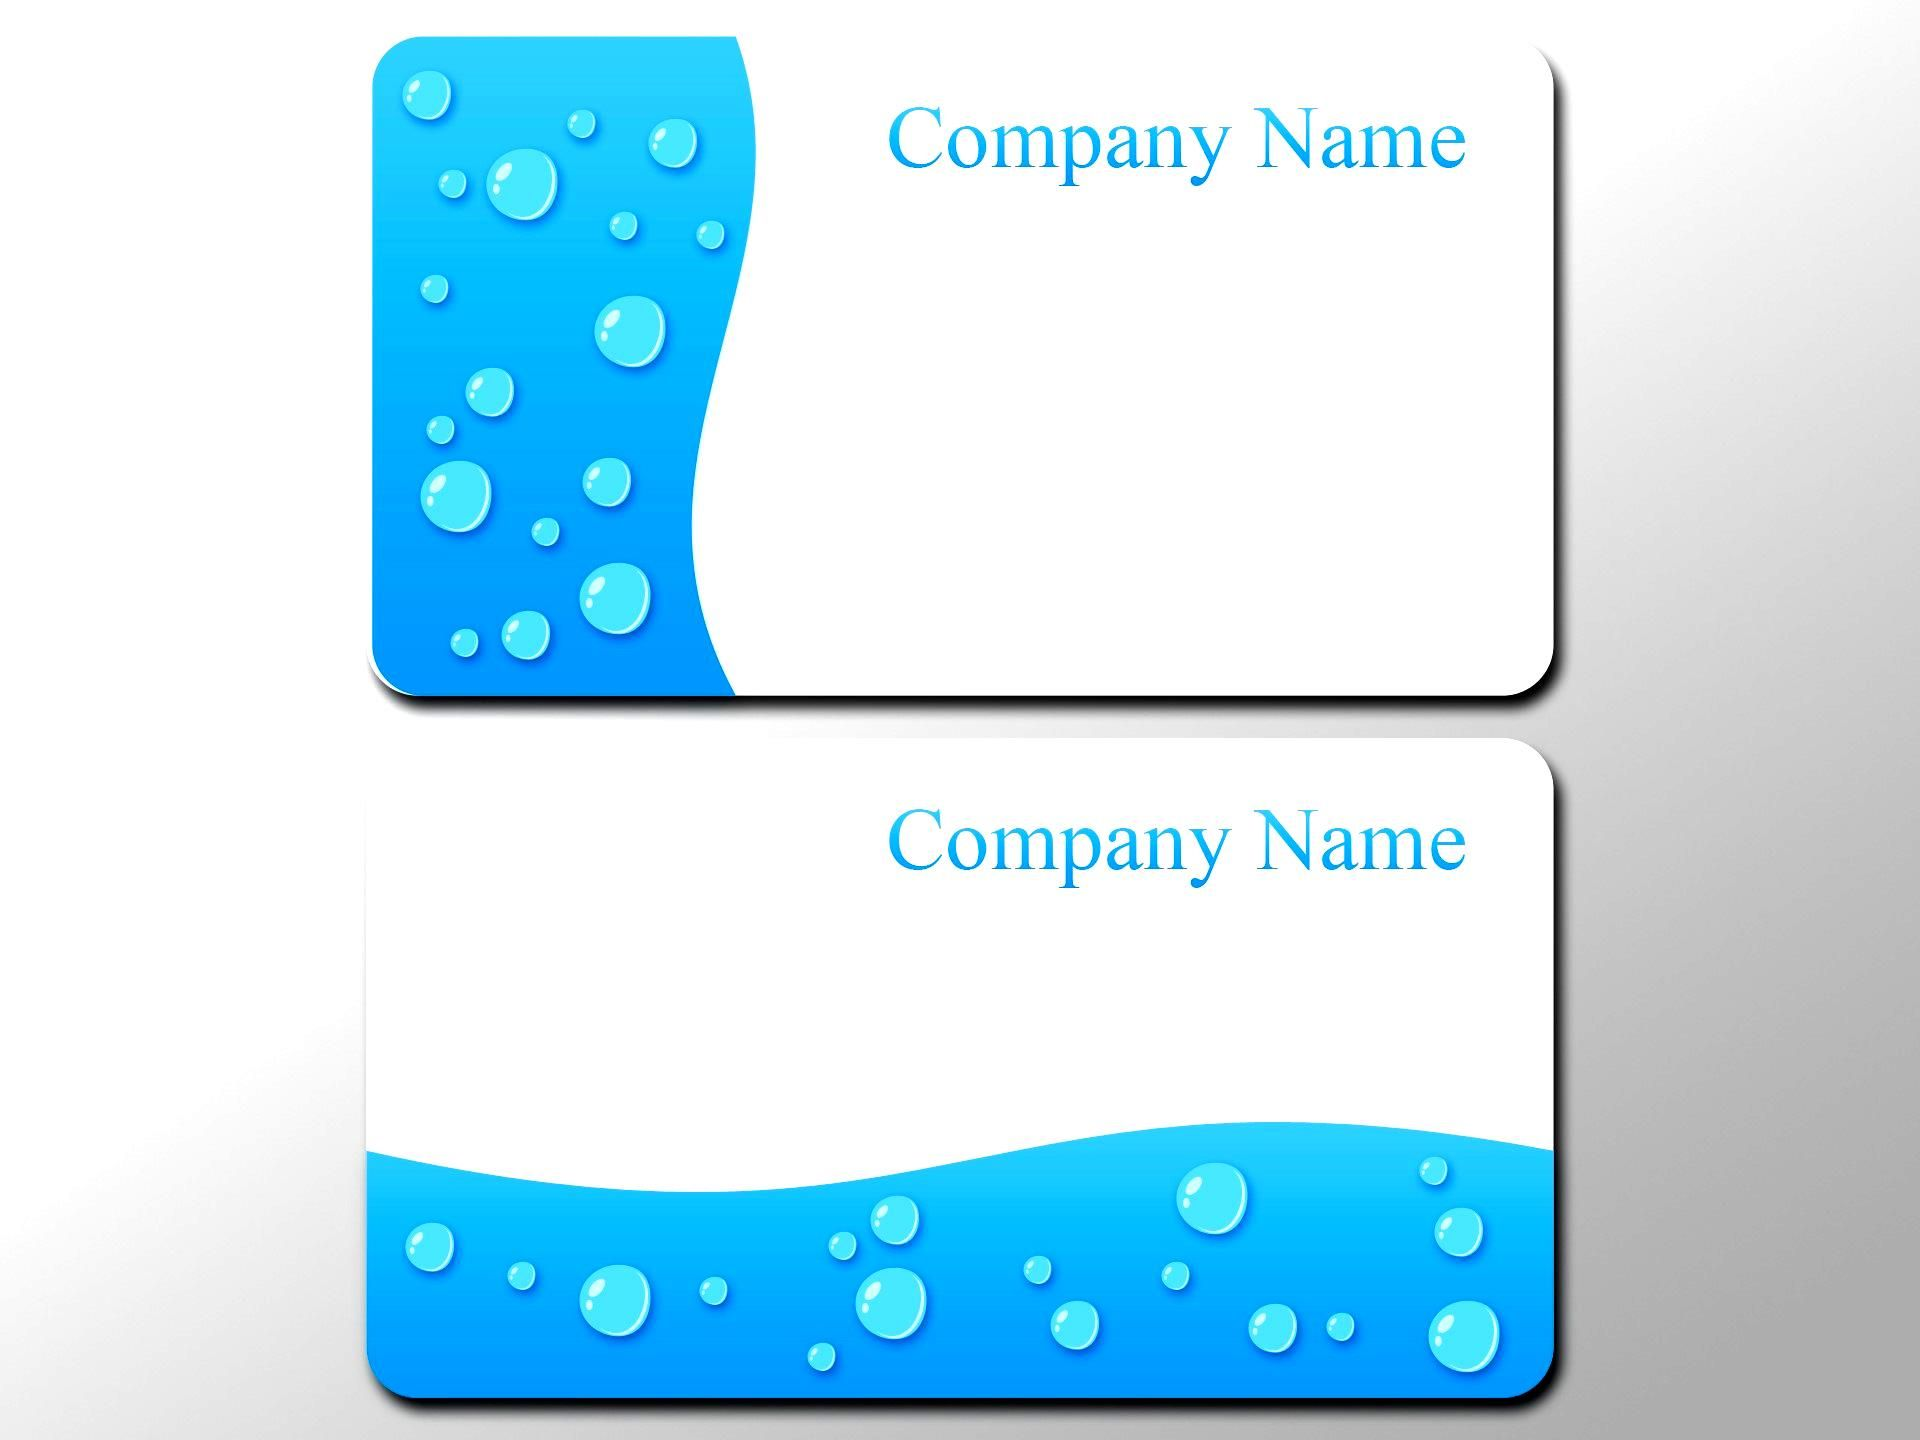 038 Free Blank Business Card Template Microsoft Word For Gimp Bus Business Card Template Photoshop Business Card Templates Download Business Card Template Word